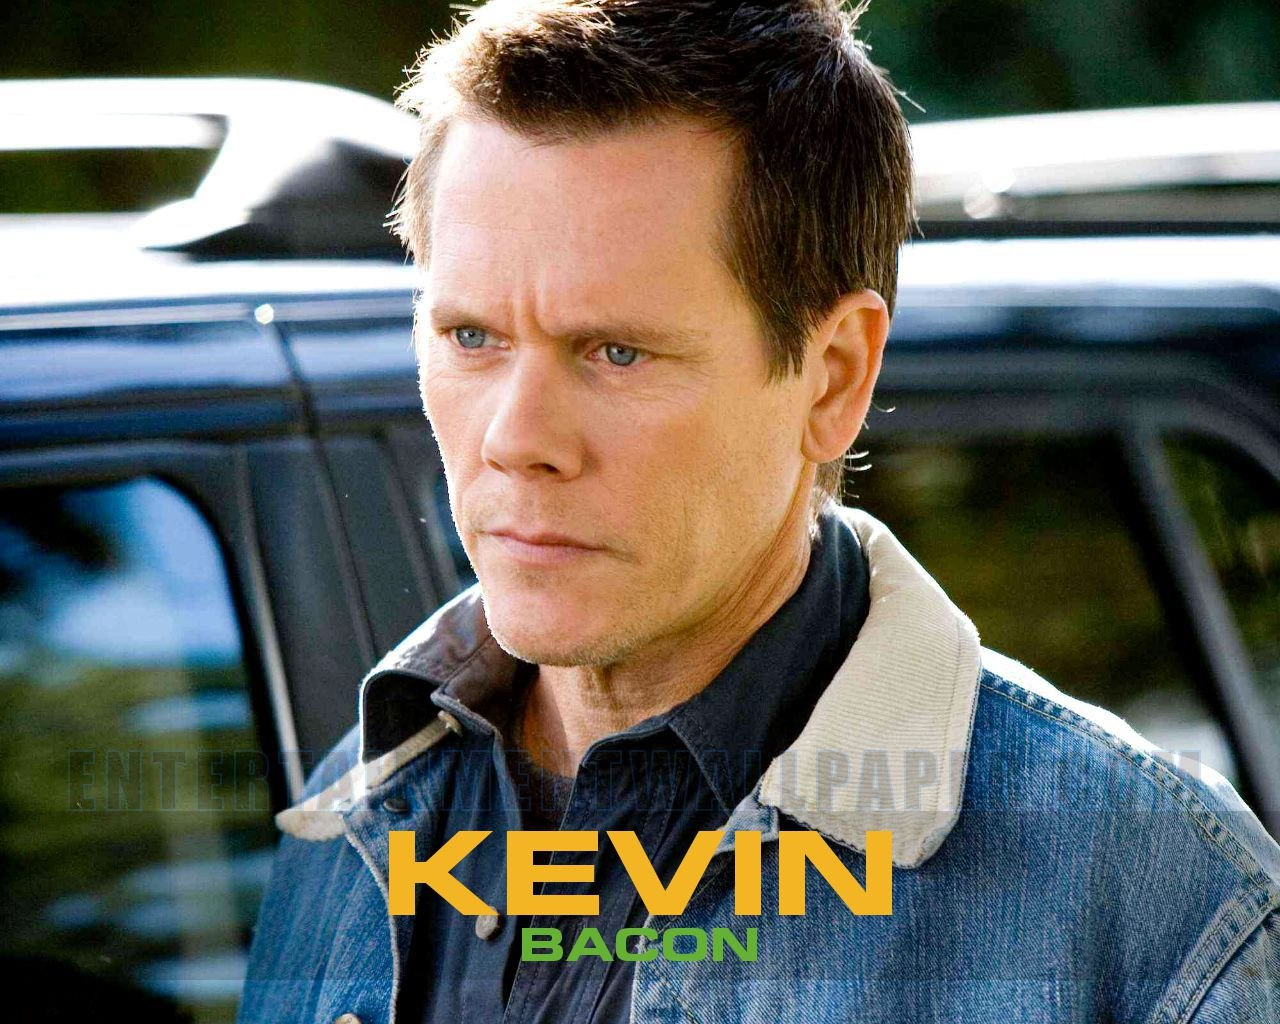 Pictures of Kevin Bacon   Pictures Of Celebrities 1280x1024